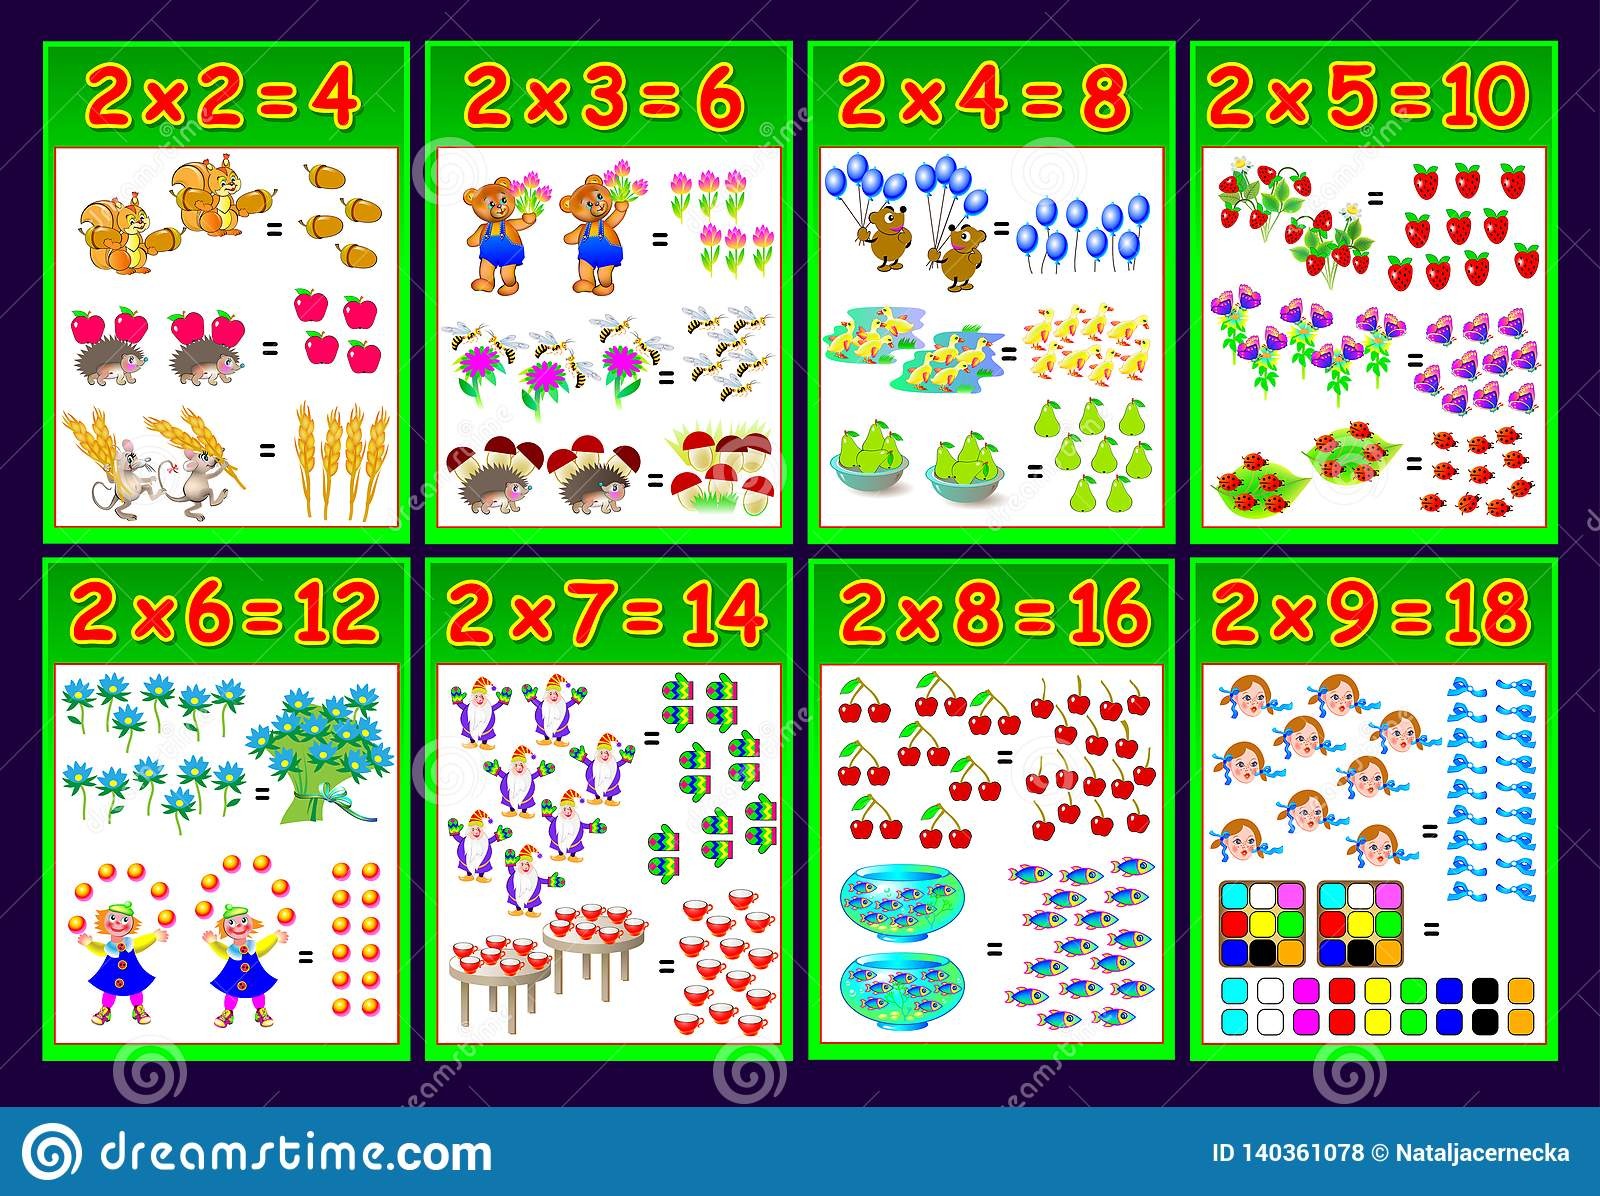 Multiplication Table By 2 For Kids Educational Page For Math Book Printable Worksheet For